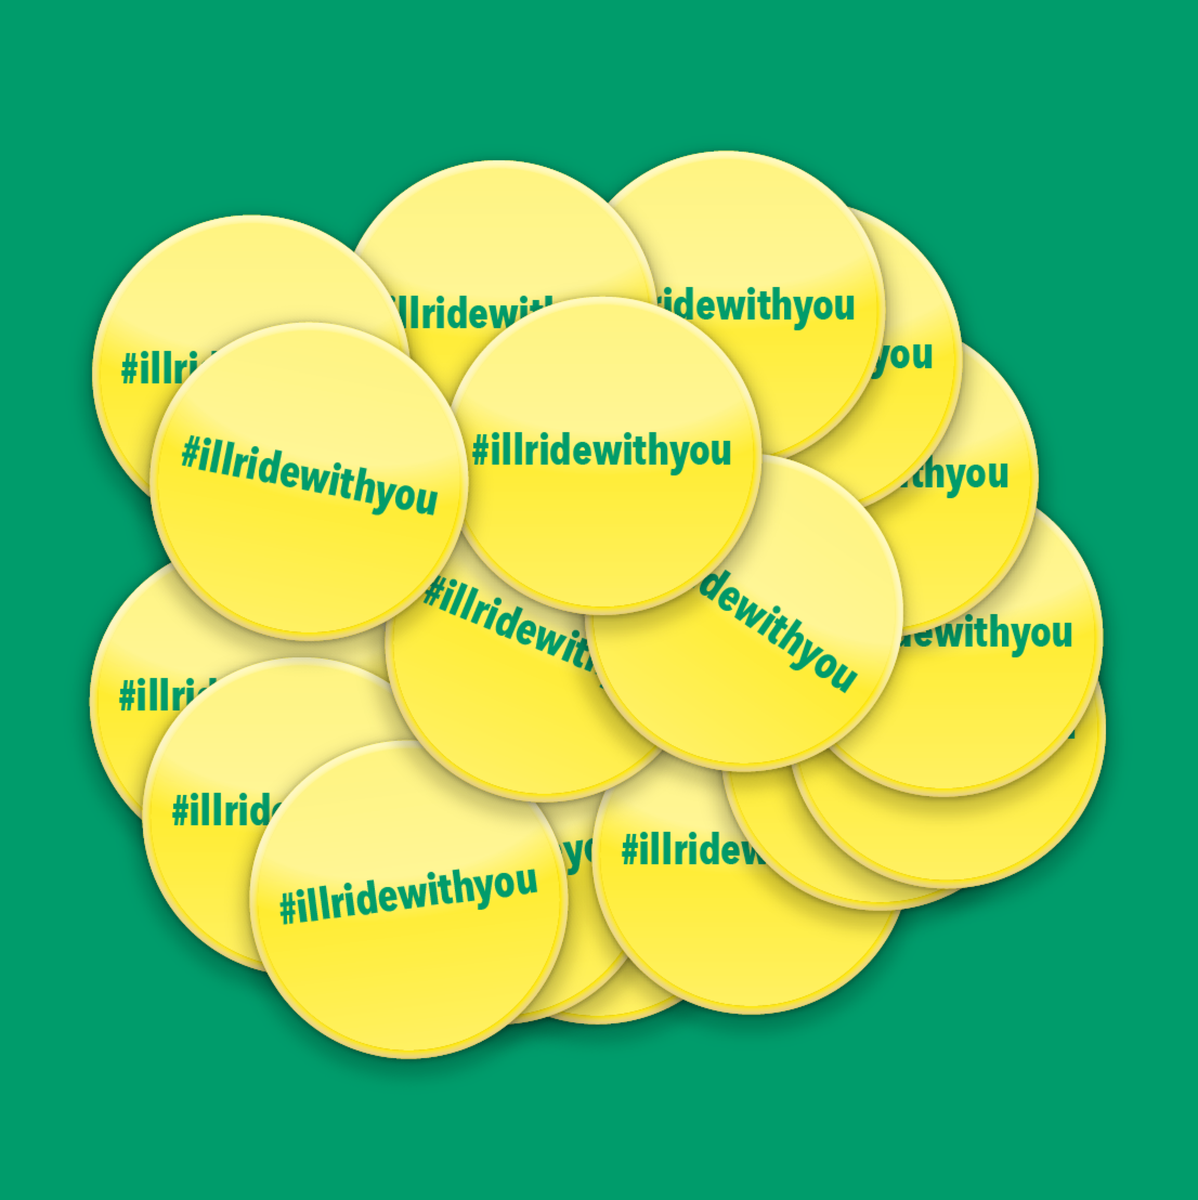 @JaneCaro Can you help find someone to produce badges to hand out to #illridewithyou folk at stops and station? http://t.co/gfOIoYDzvt